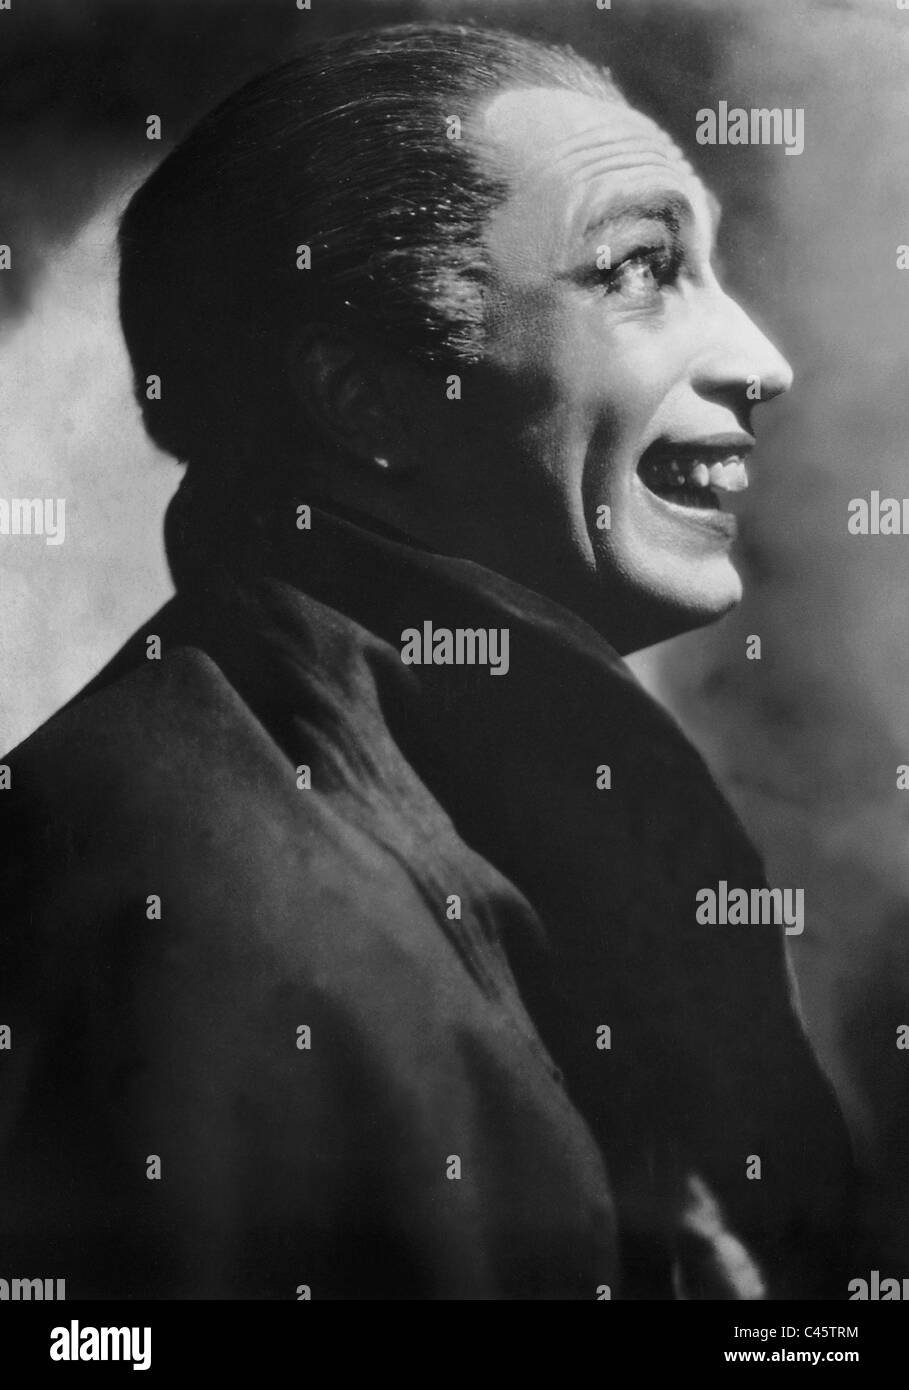 conrad veidt stock photos  u0026 conrad veidt stock images